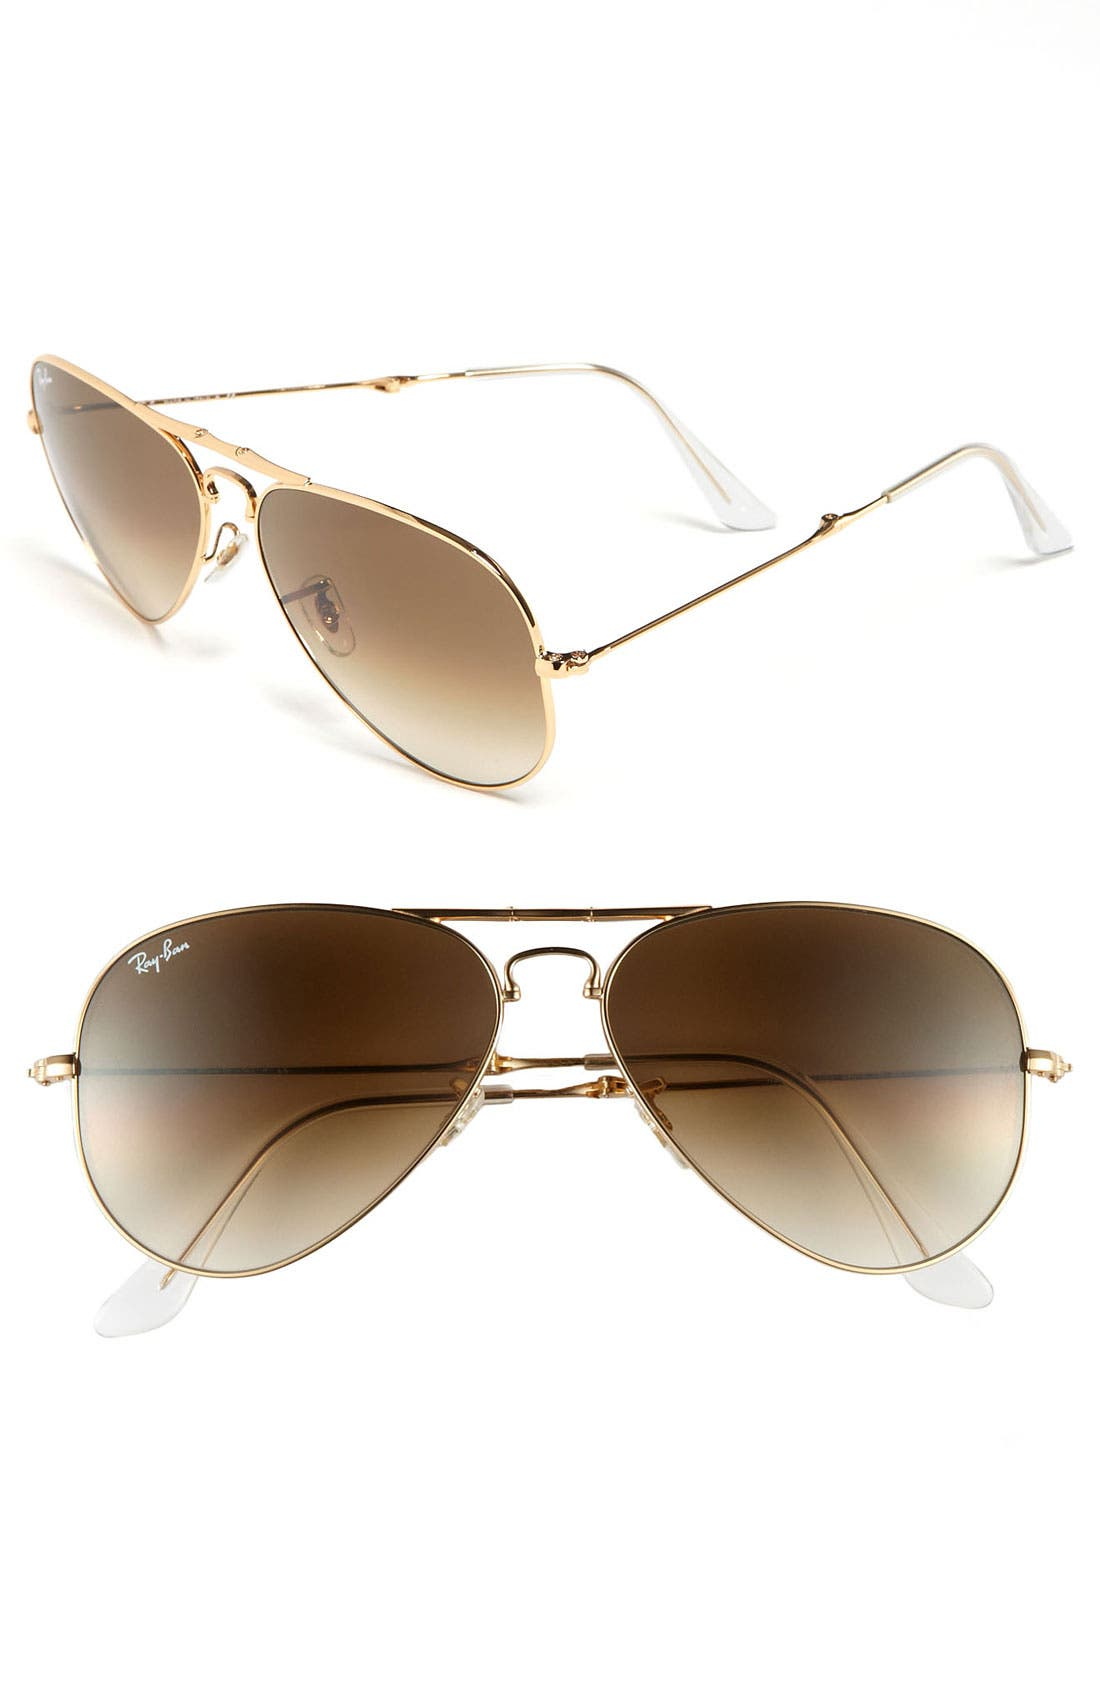 Main Image - Ray-Ban 58mm Folding Aviator Sunglasses